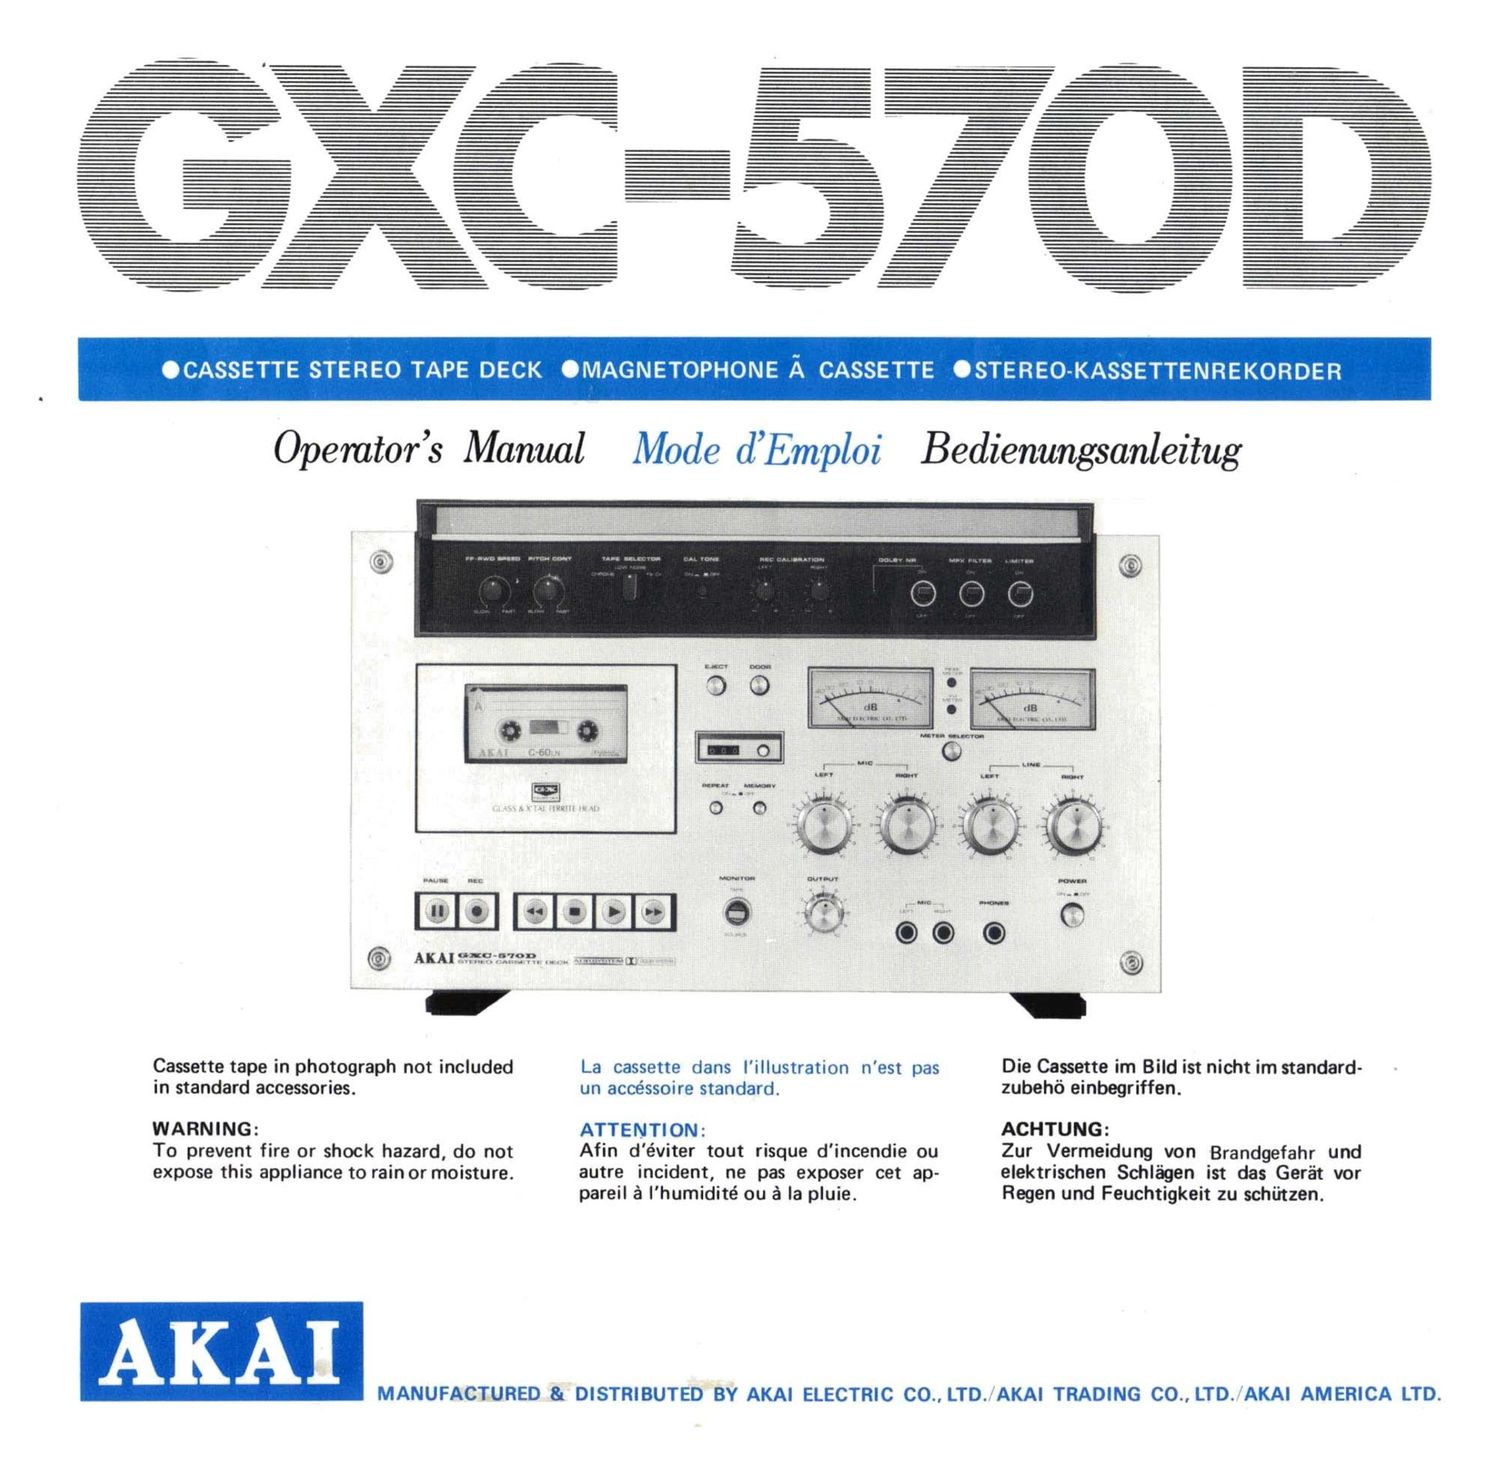 Akai GXC 570 D Owners Manual